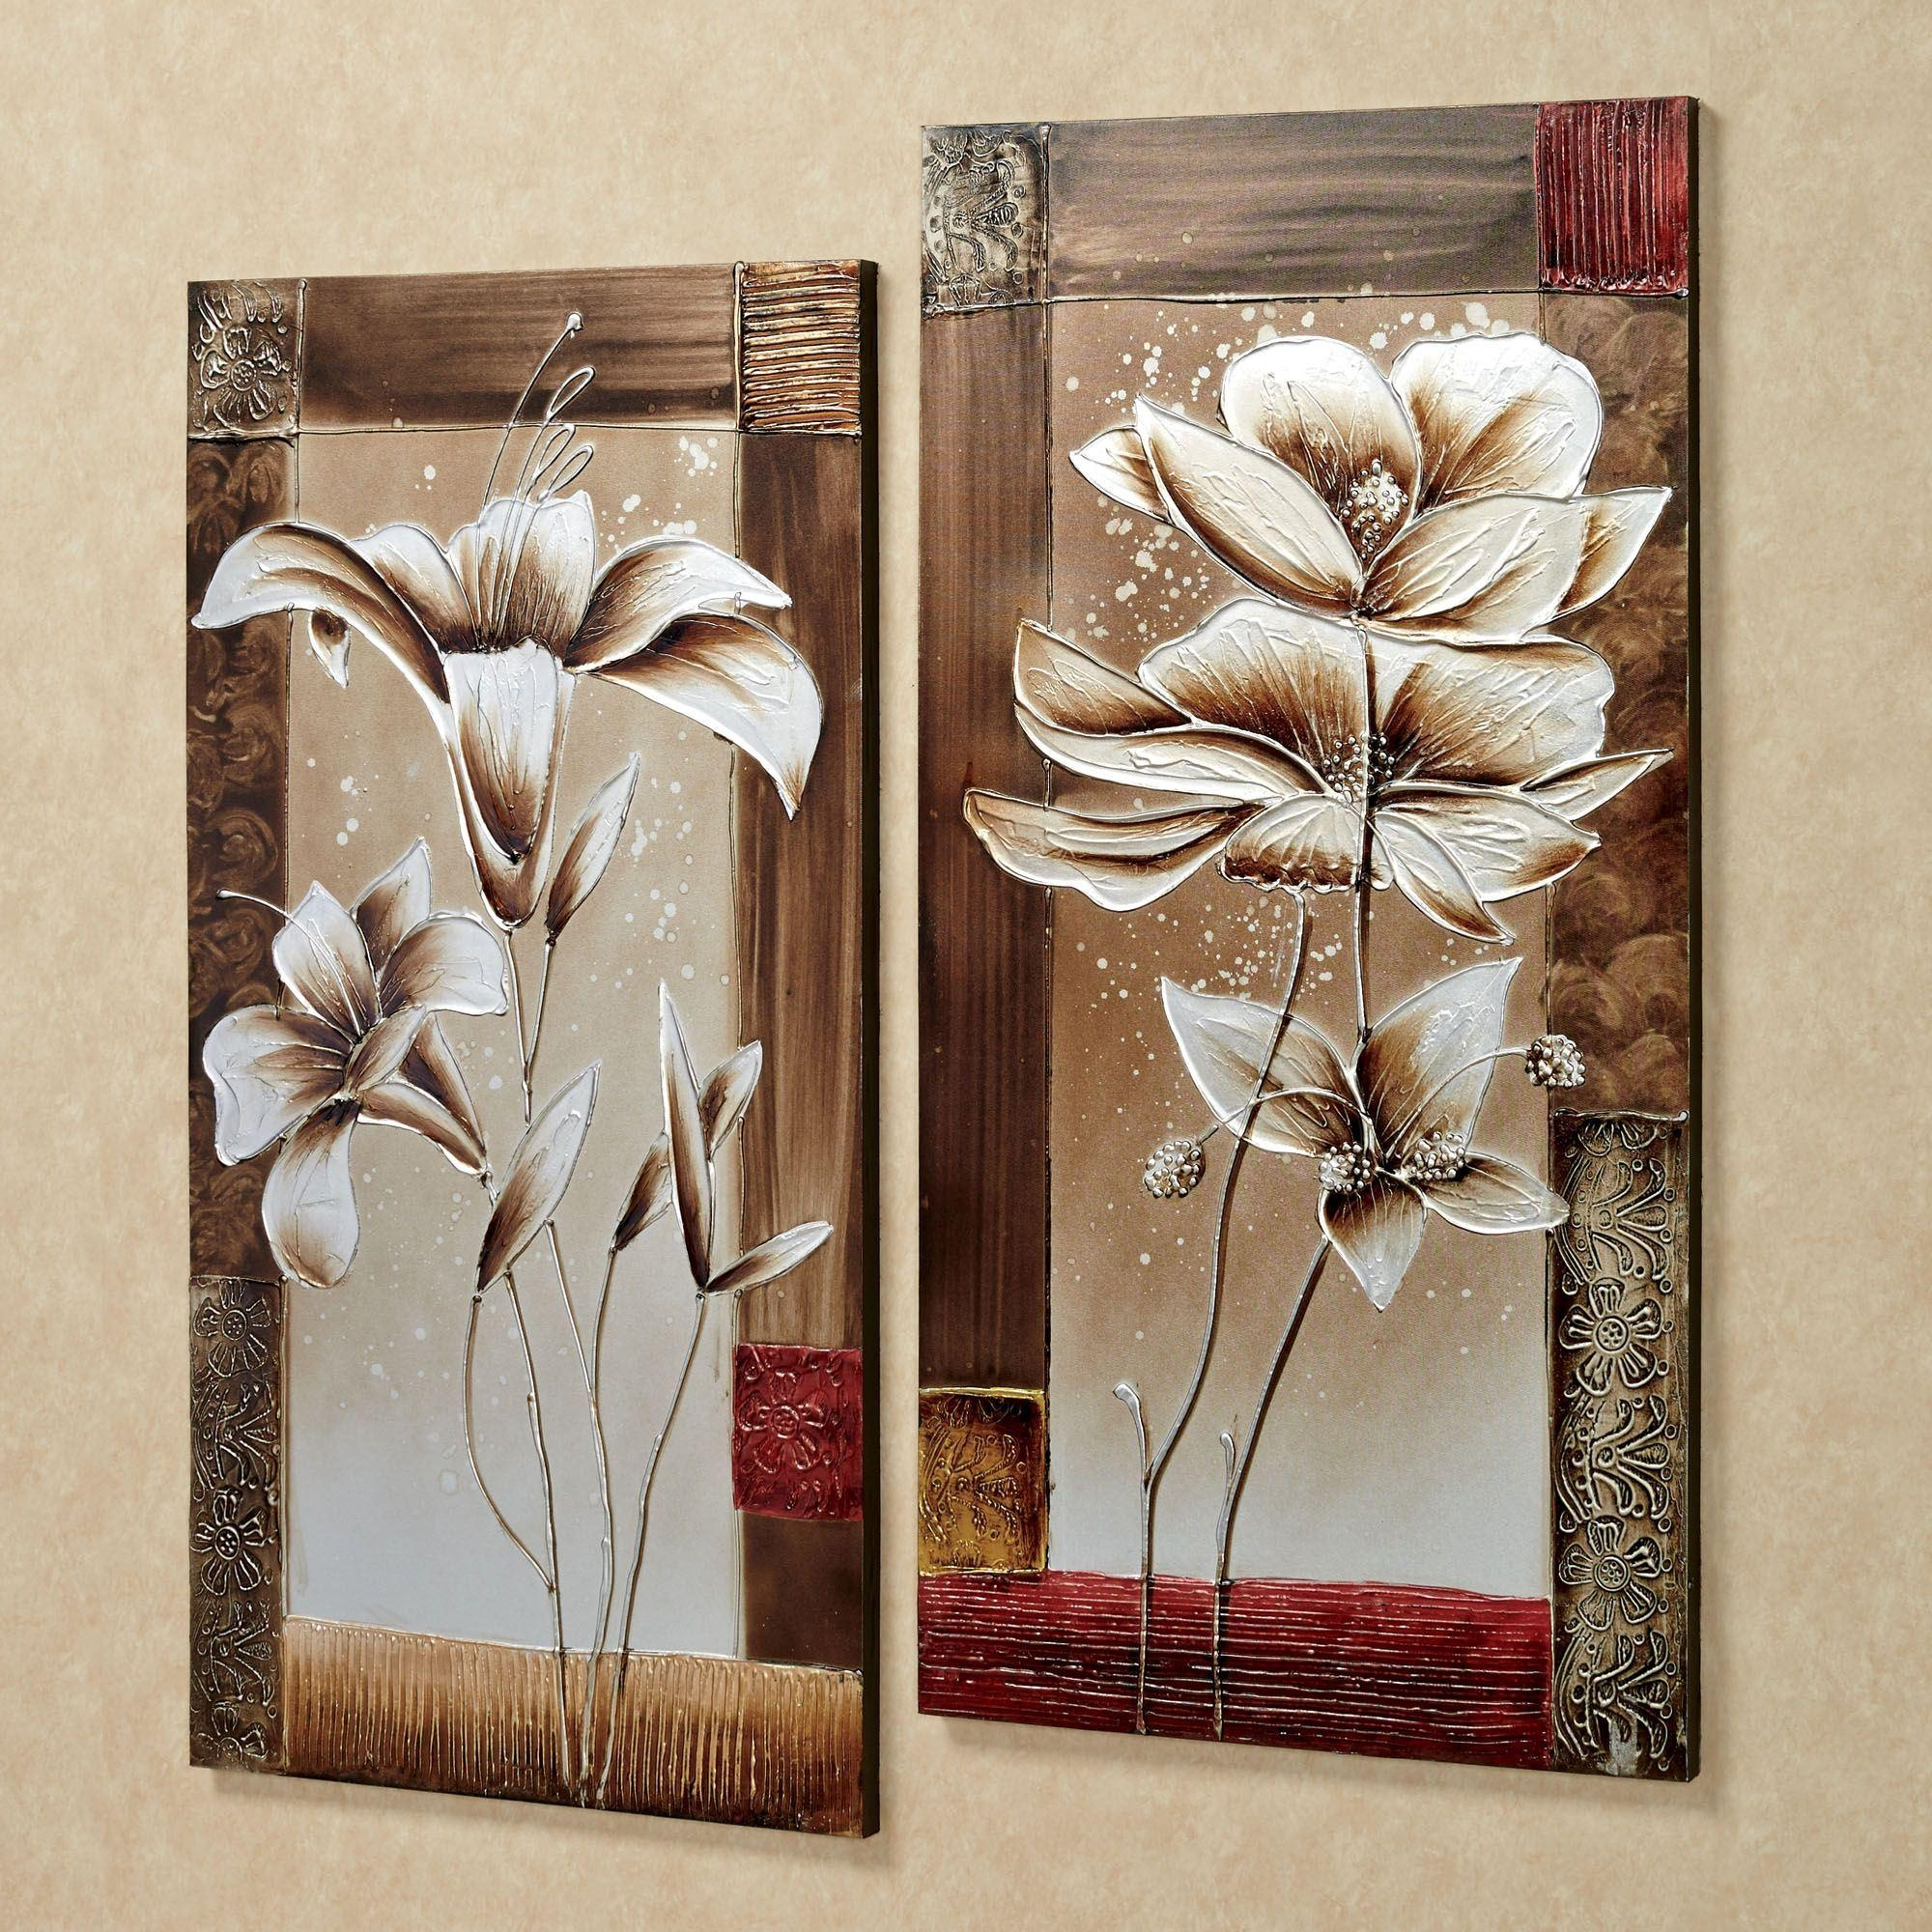 Petals Of Spring Floral Canvas Wall Art Set Intended For Kitchen Wall Art Sets (Image 13 of 20)